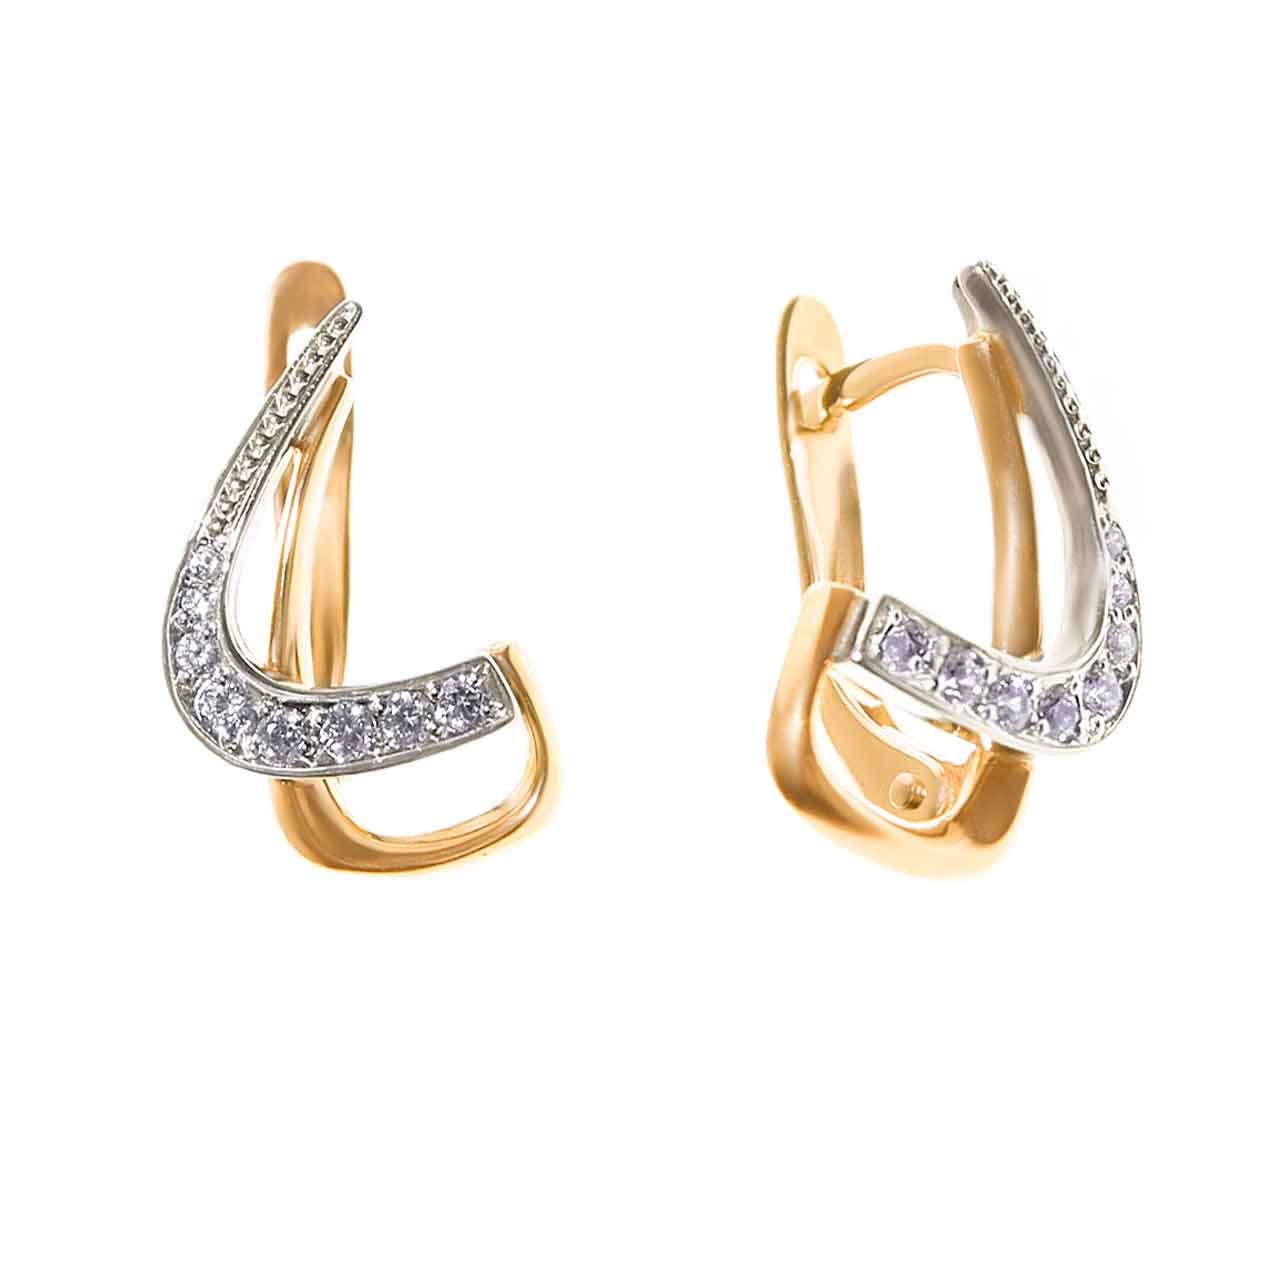 Cubic zirconia gold earrings 1